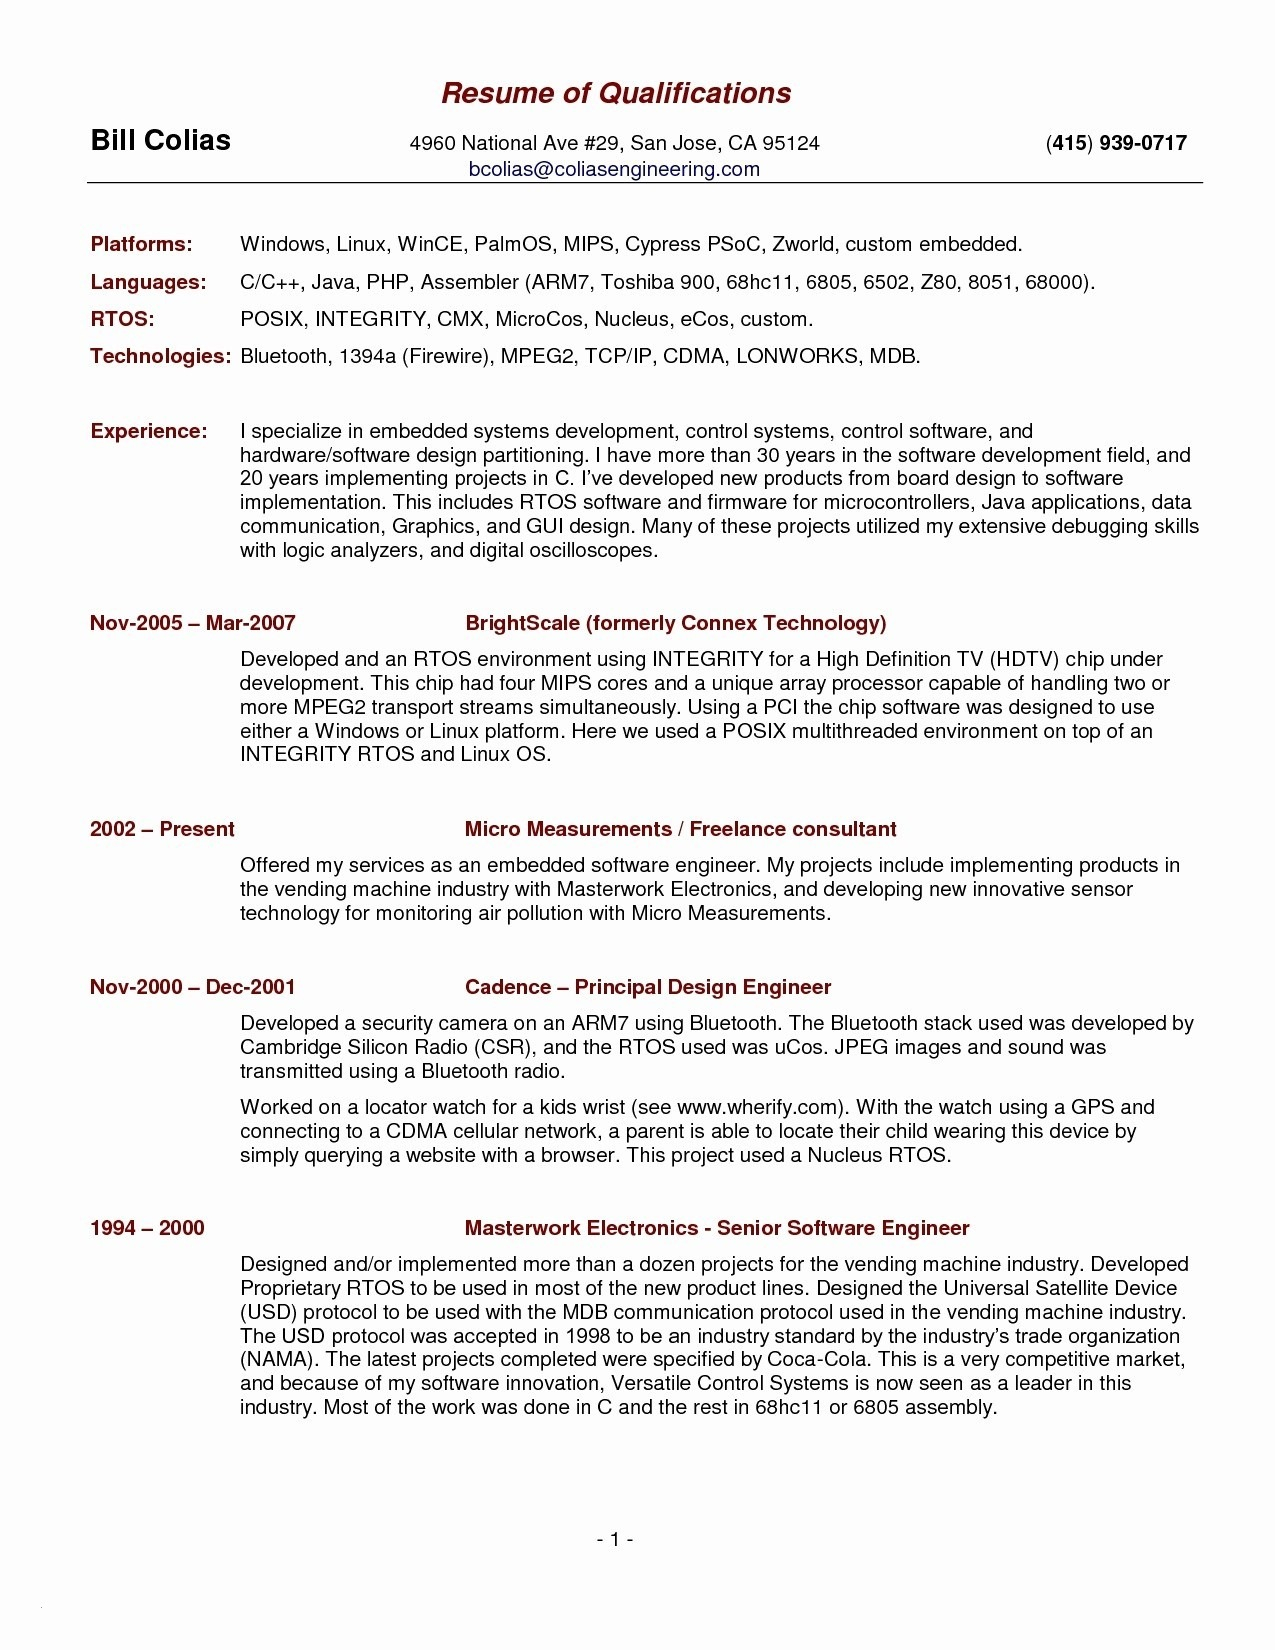 consulting resume template Collection-Resume Templates Pdf Free Inspirational Lovely Pr Resume Template Elegant Dictionary Template 0d Archives 12-j